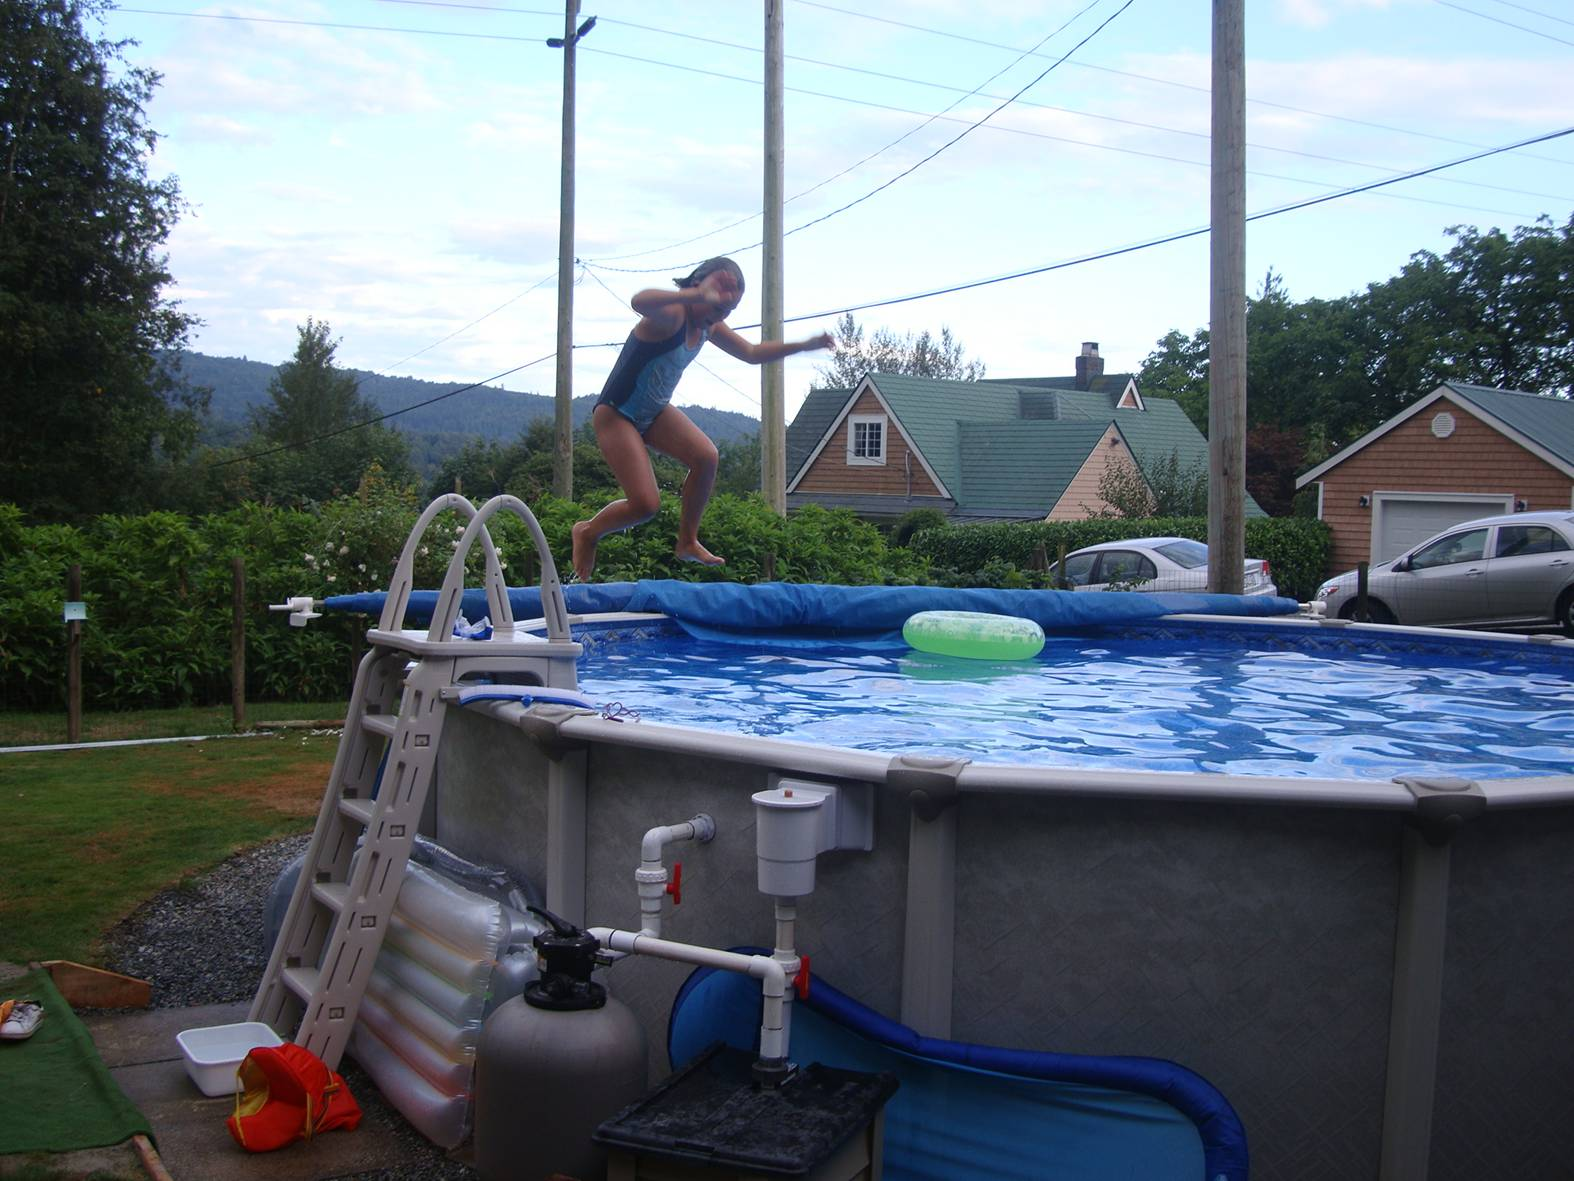 picture:  Isabelle made a big splash at our wedding celebration in Ruskin, B.C.